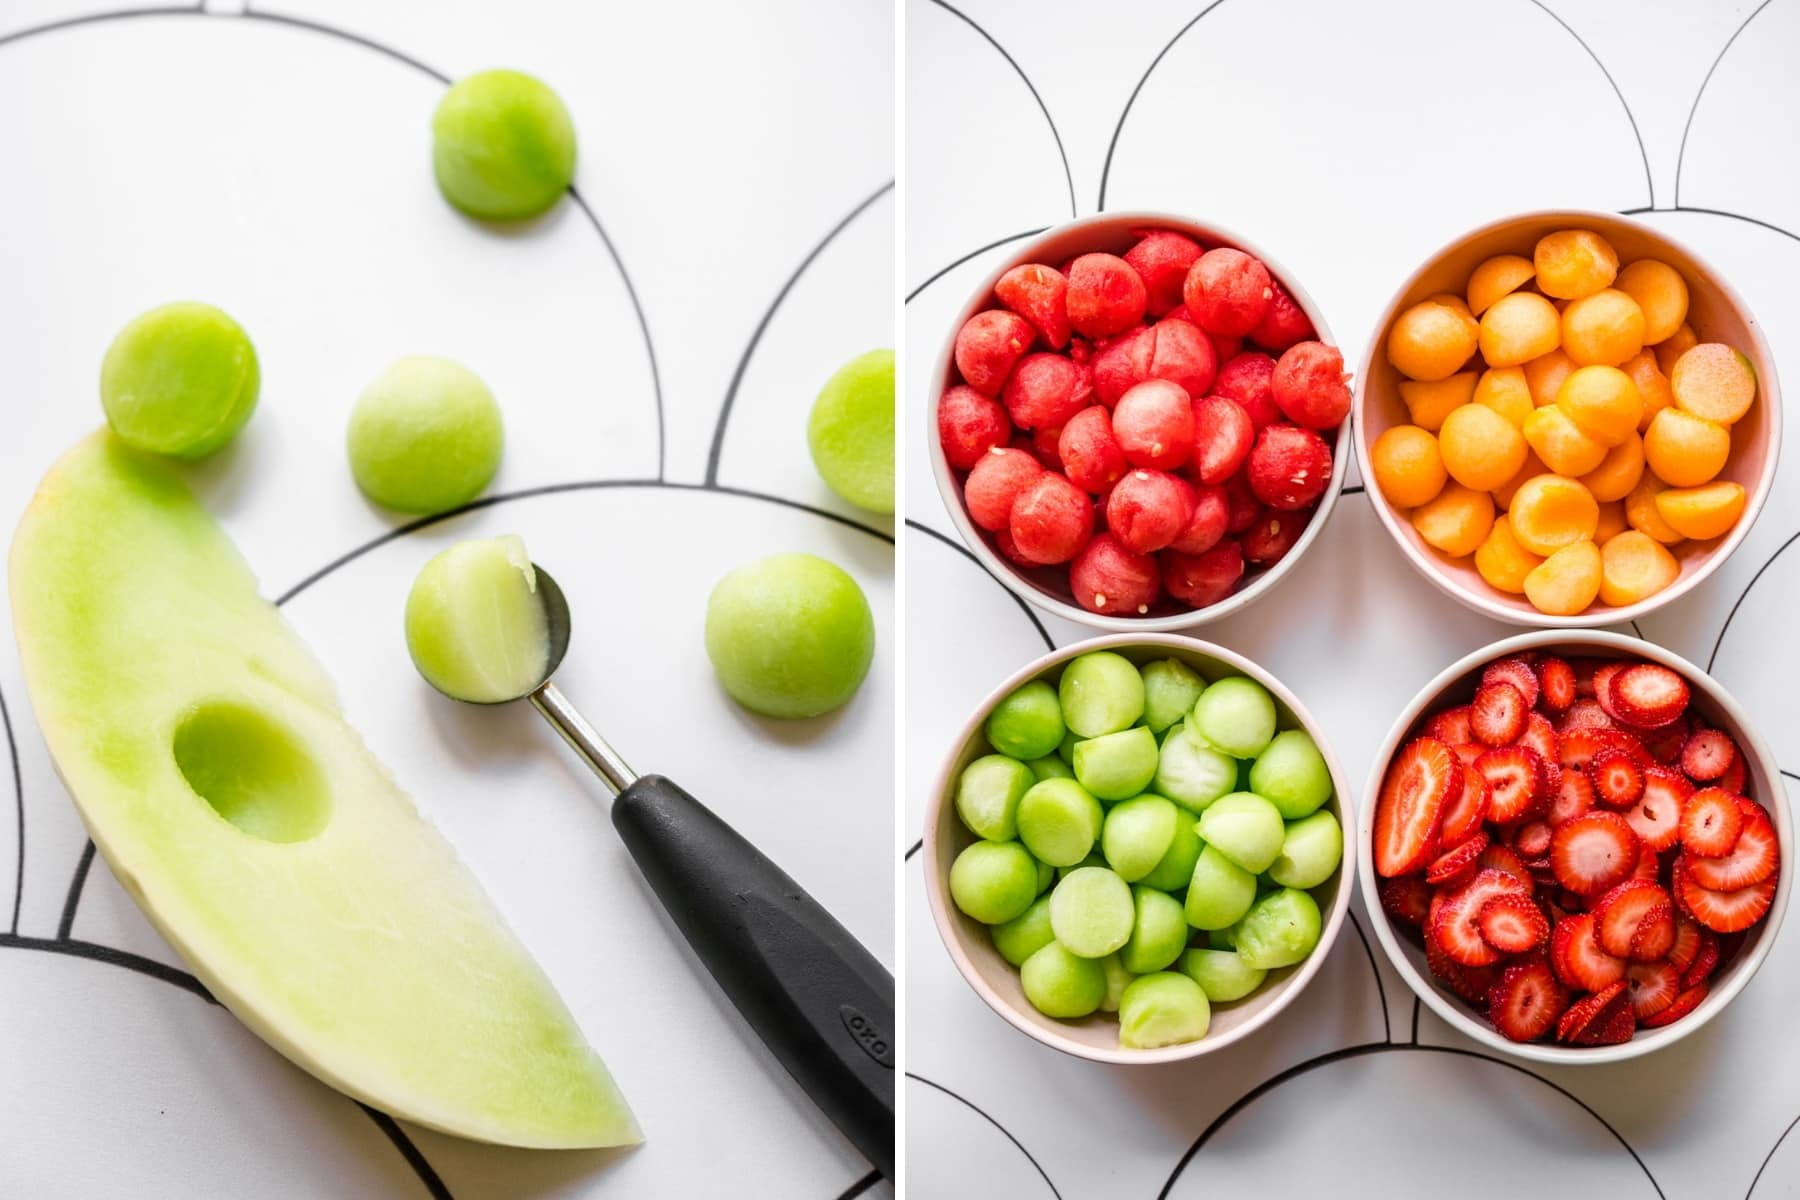 on the left: melon baller with honeydew. on the right: four bowls filled with watermelon, canteloupe, honeydew and strawberries.